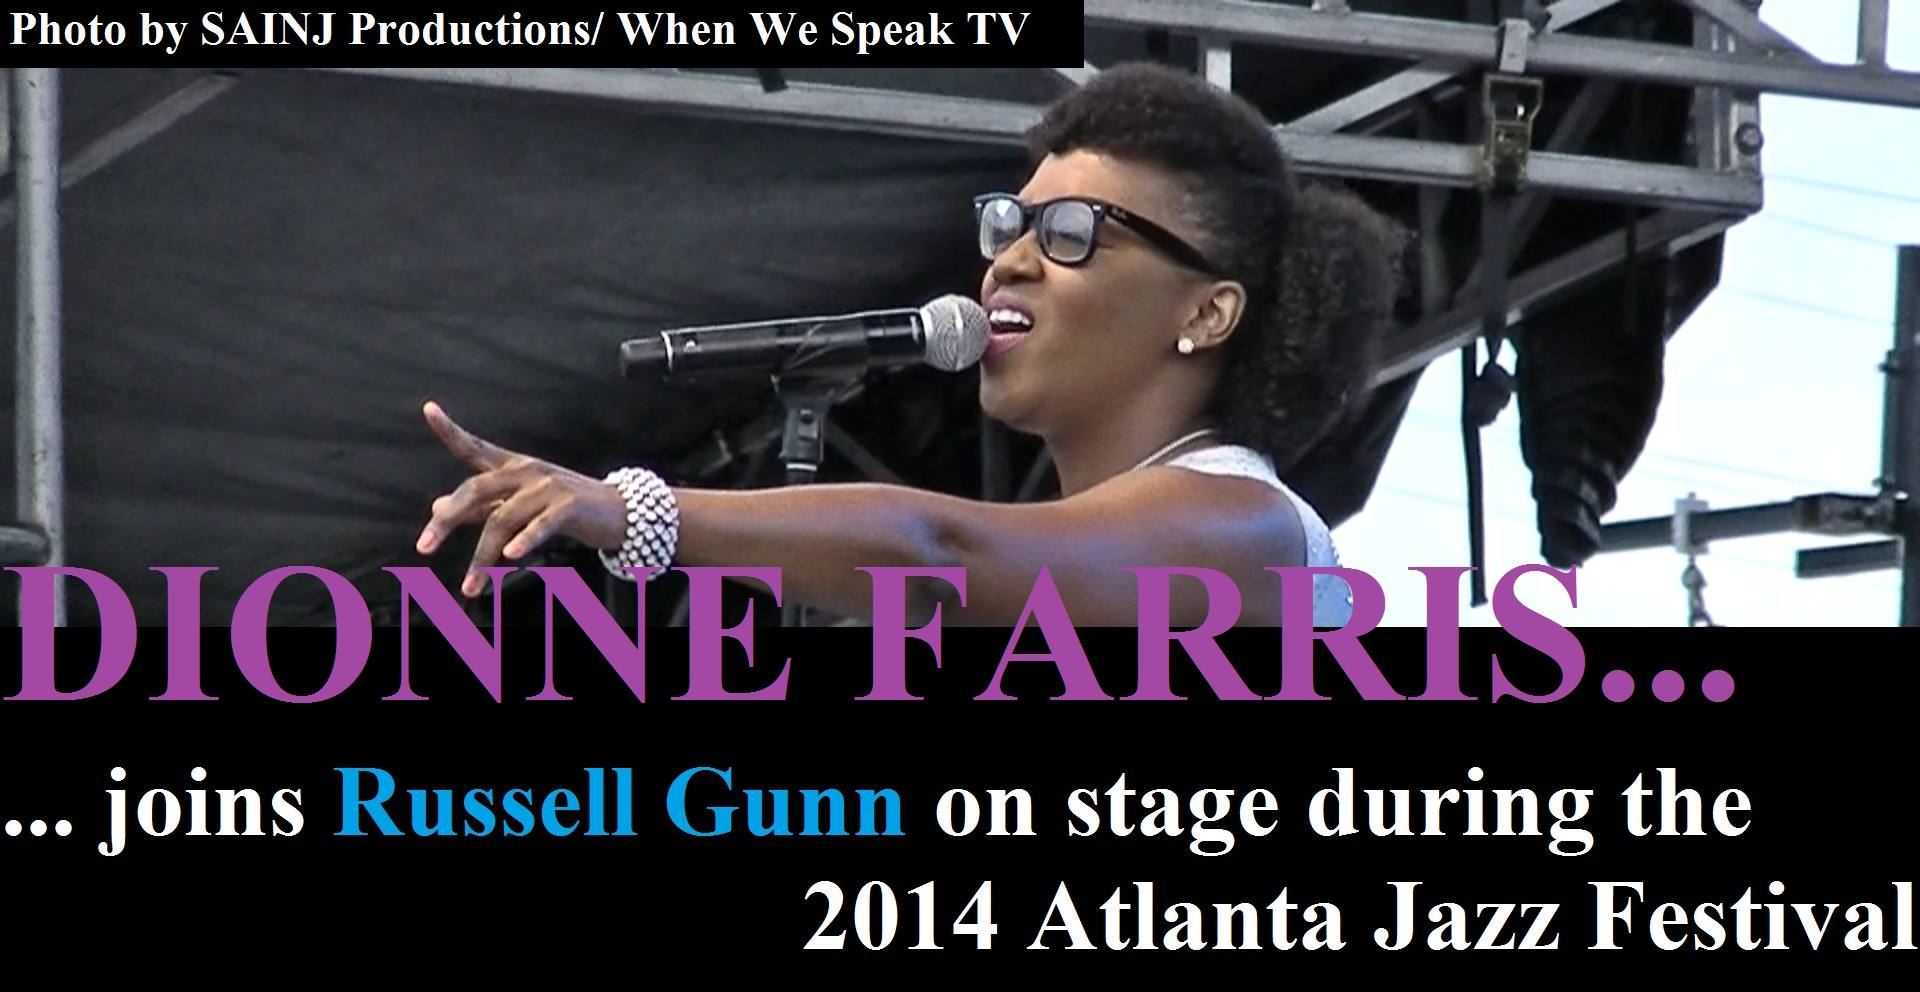 Dionne Farris Joins Russell Gunn on Stage at the 2014 Atlanta Jazz Festival